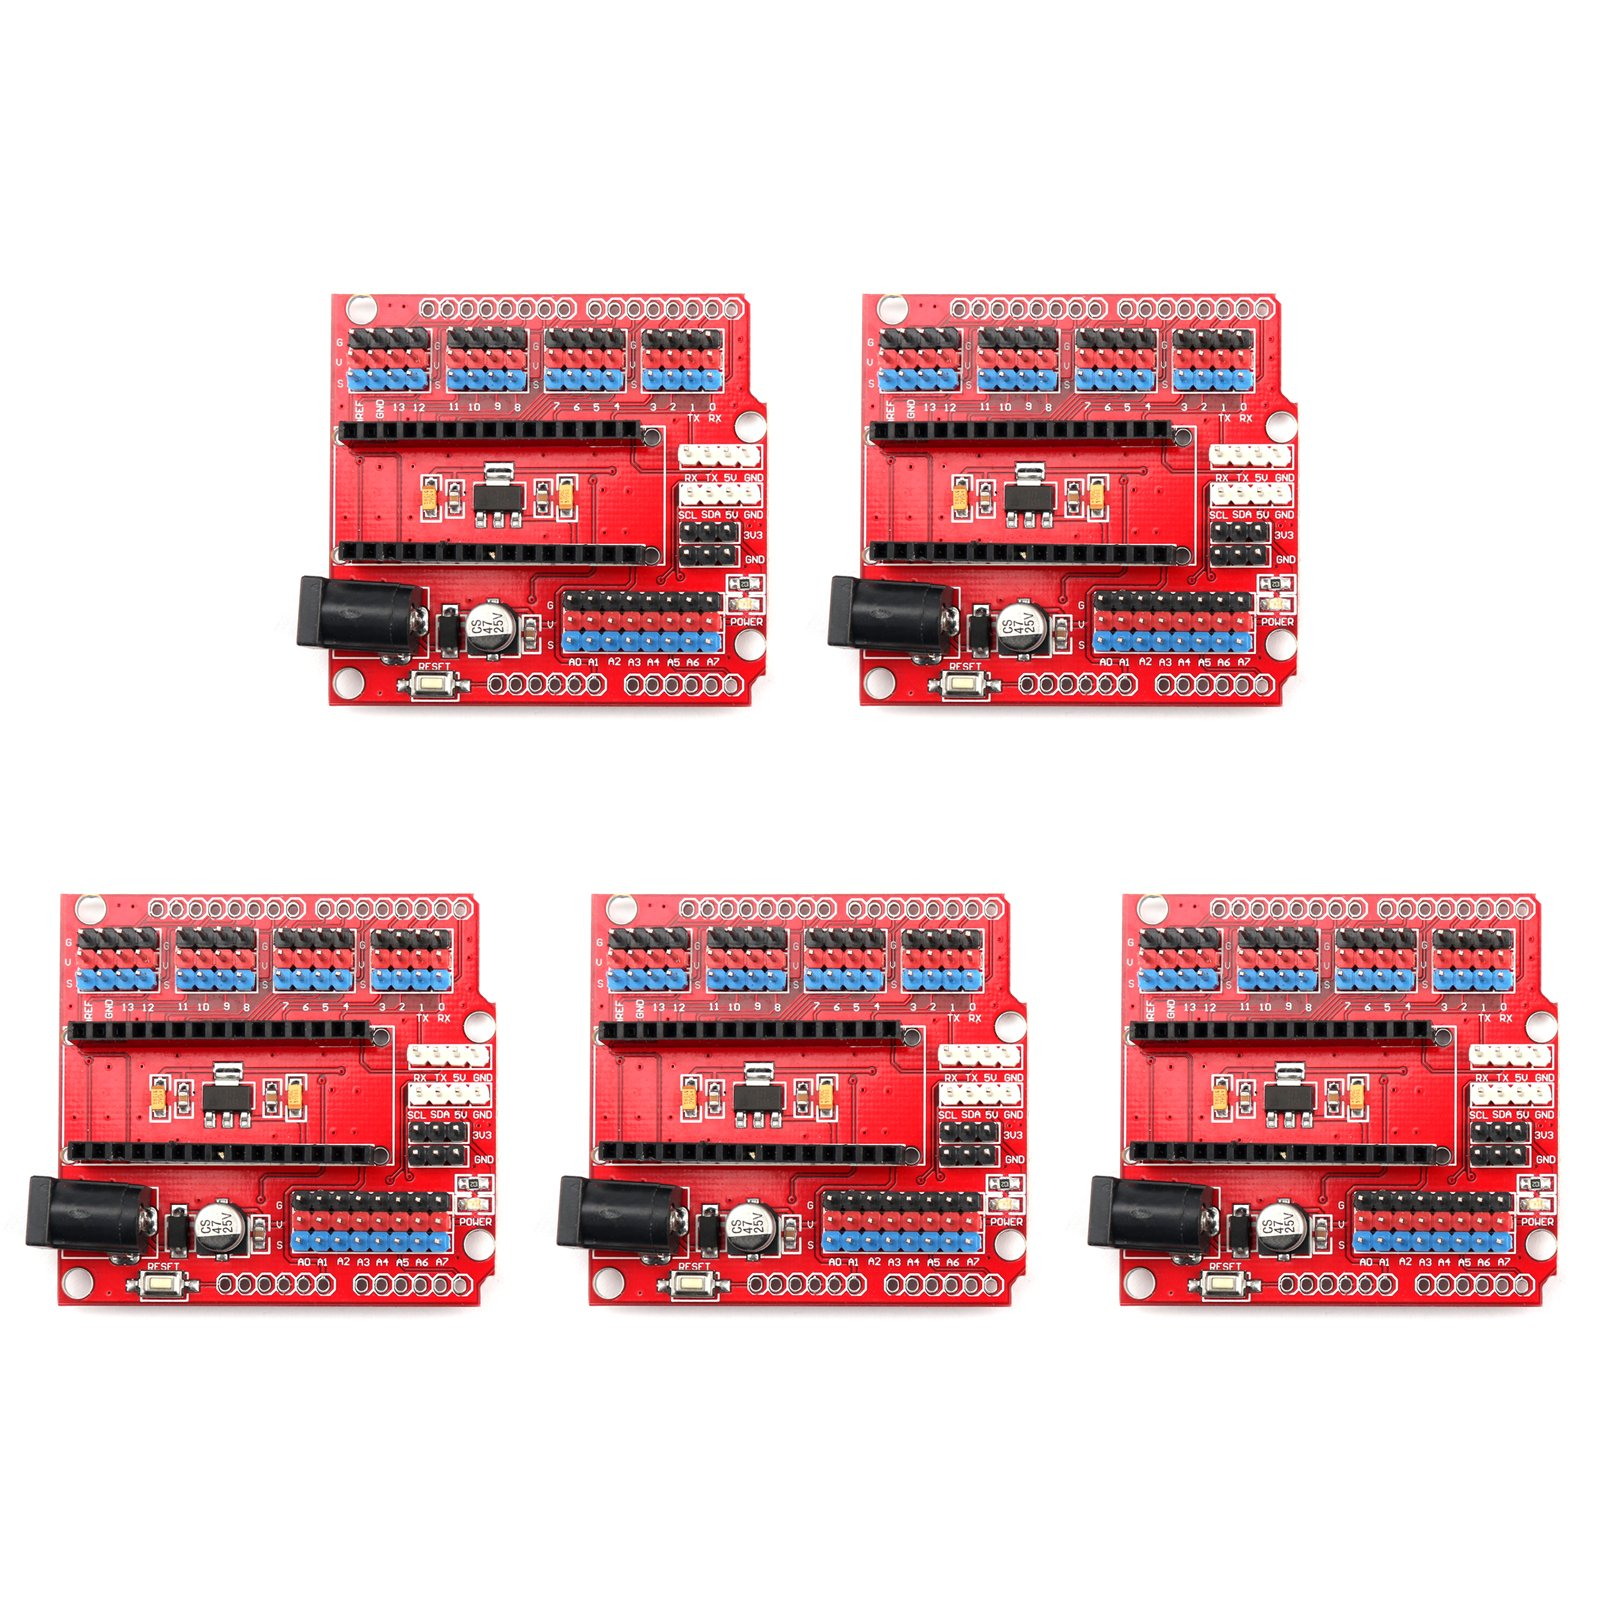 Areyourshop 5x Prototype Shield I/O Expansion Module Extension Board for Arduino Nano V3.0